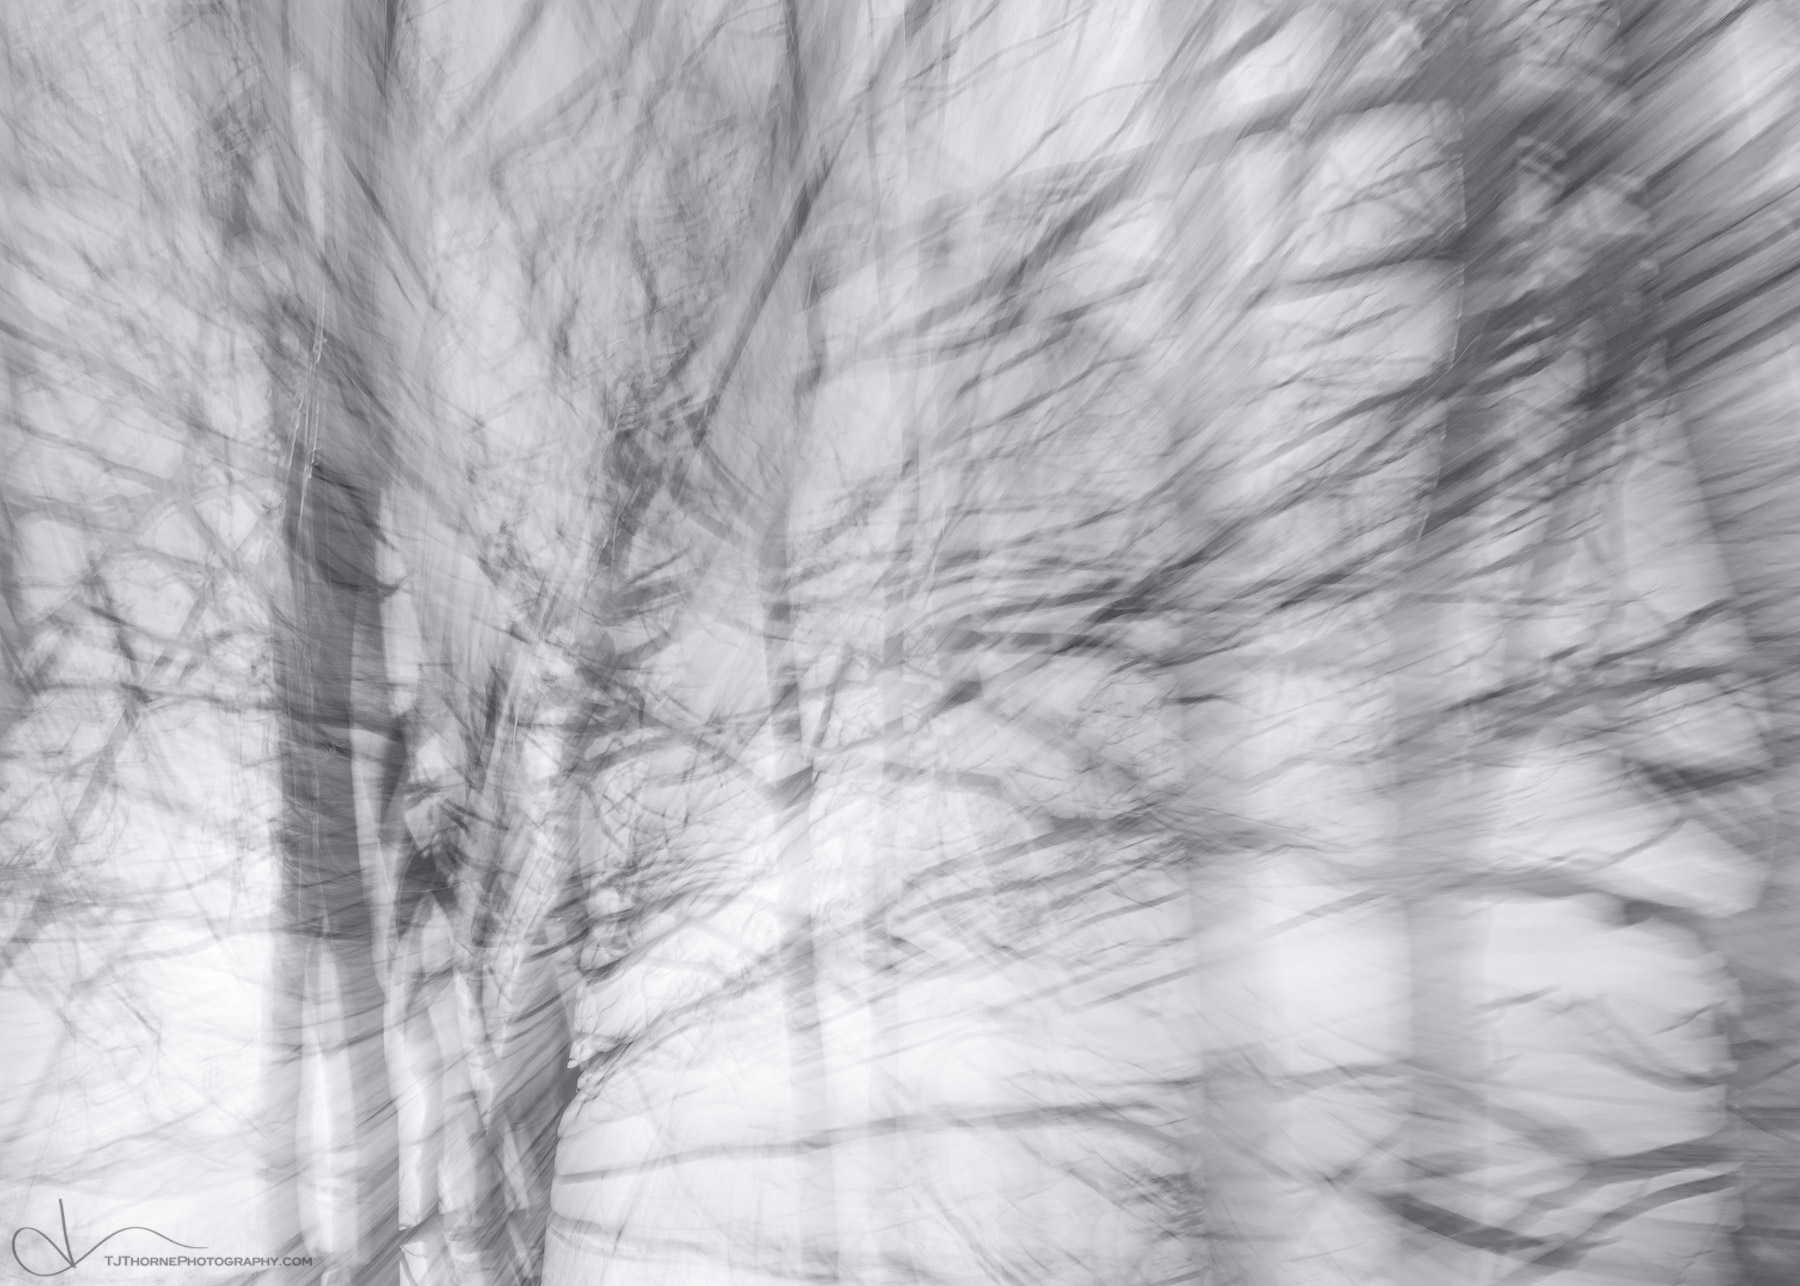 trees, abstract, forest, photo